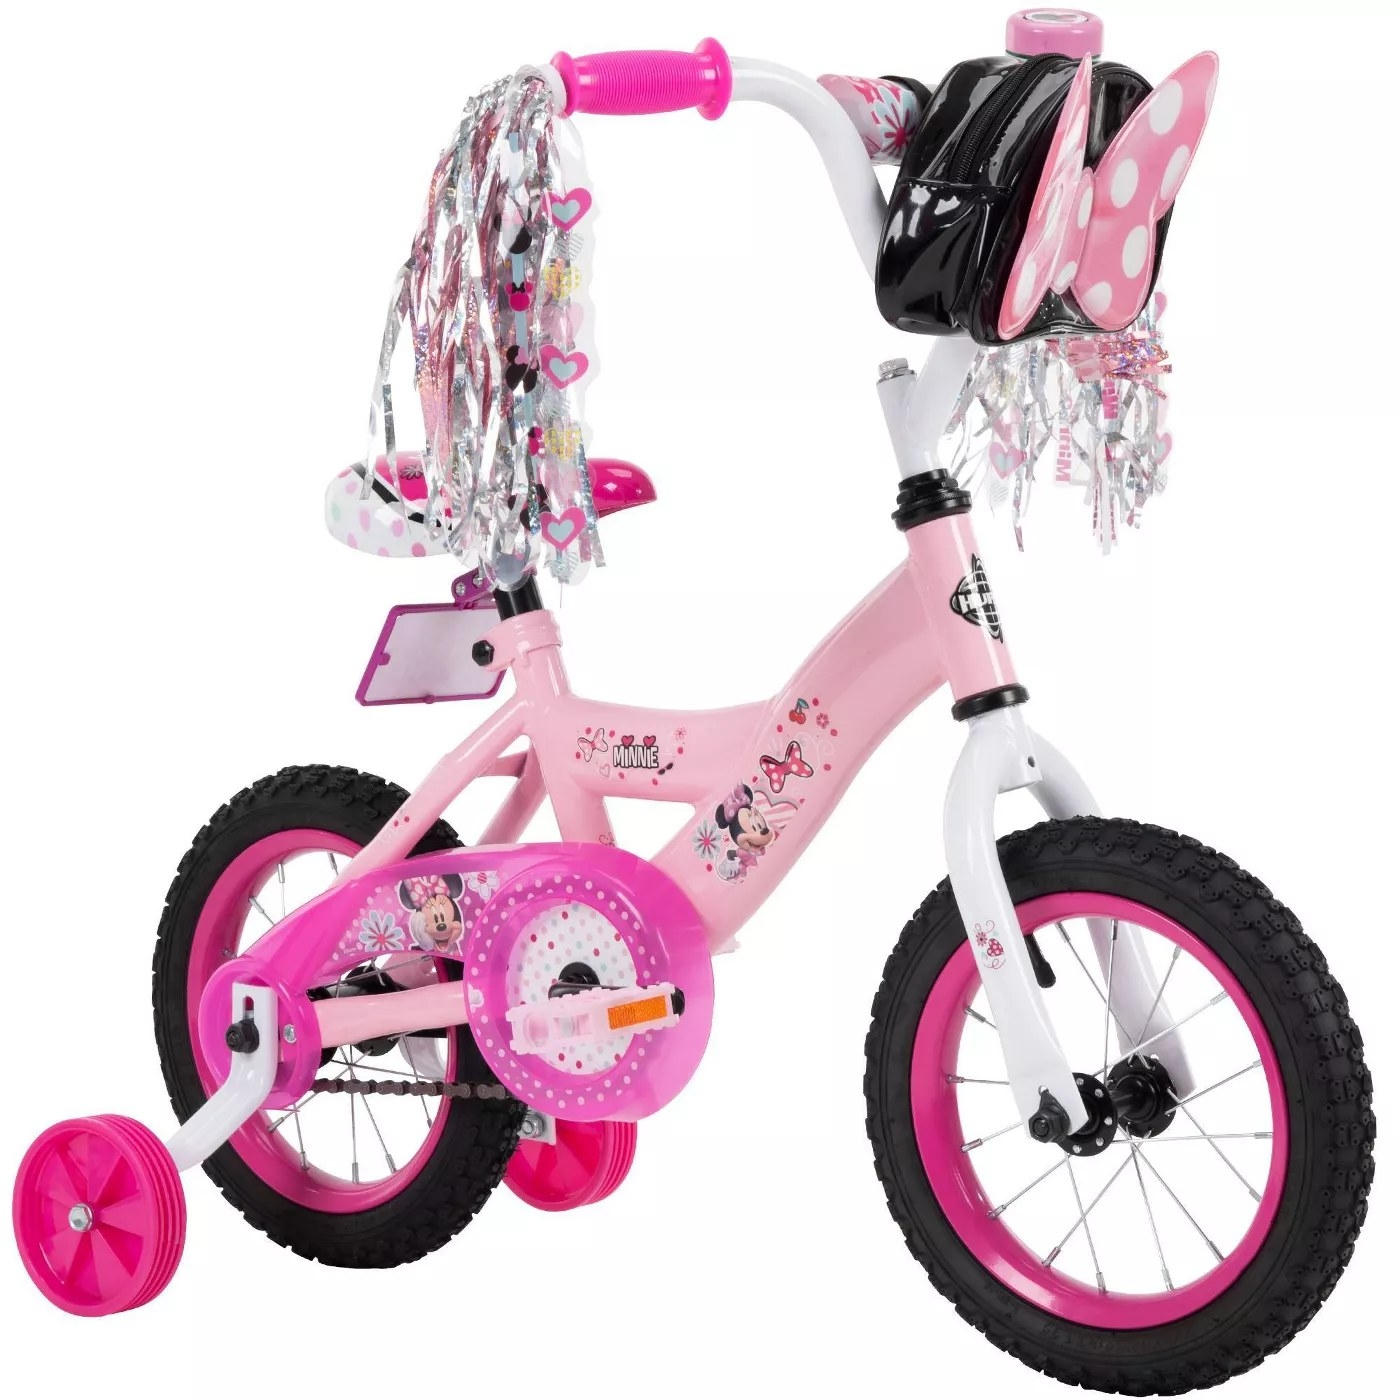 The pink Minnie Mouse bike with training wheels, a pouch, and tassels